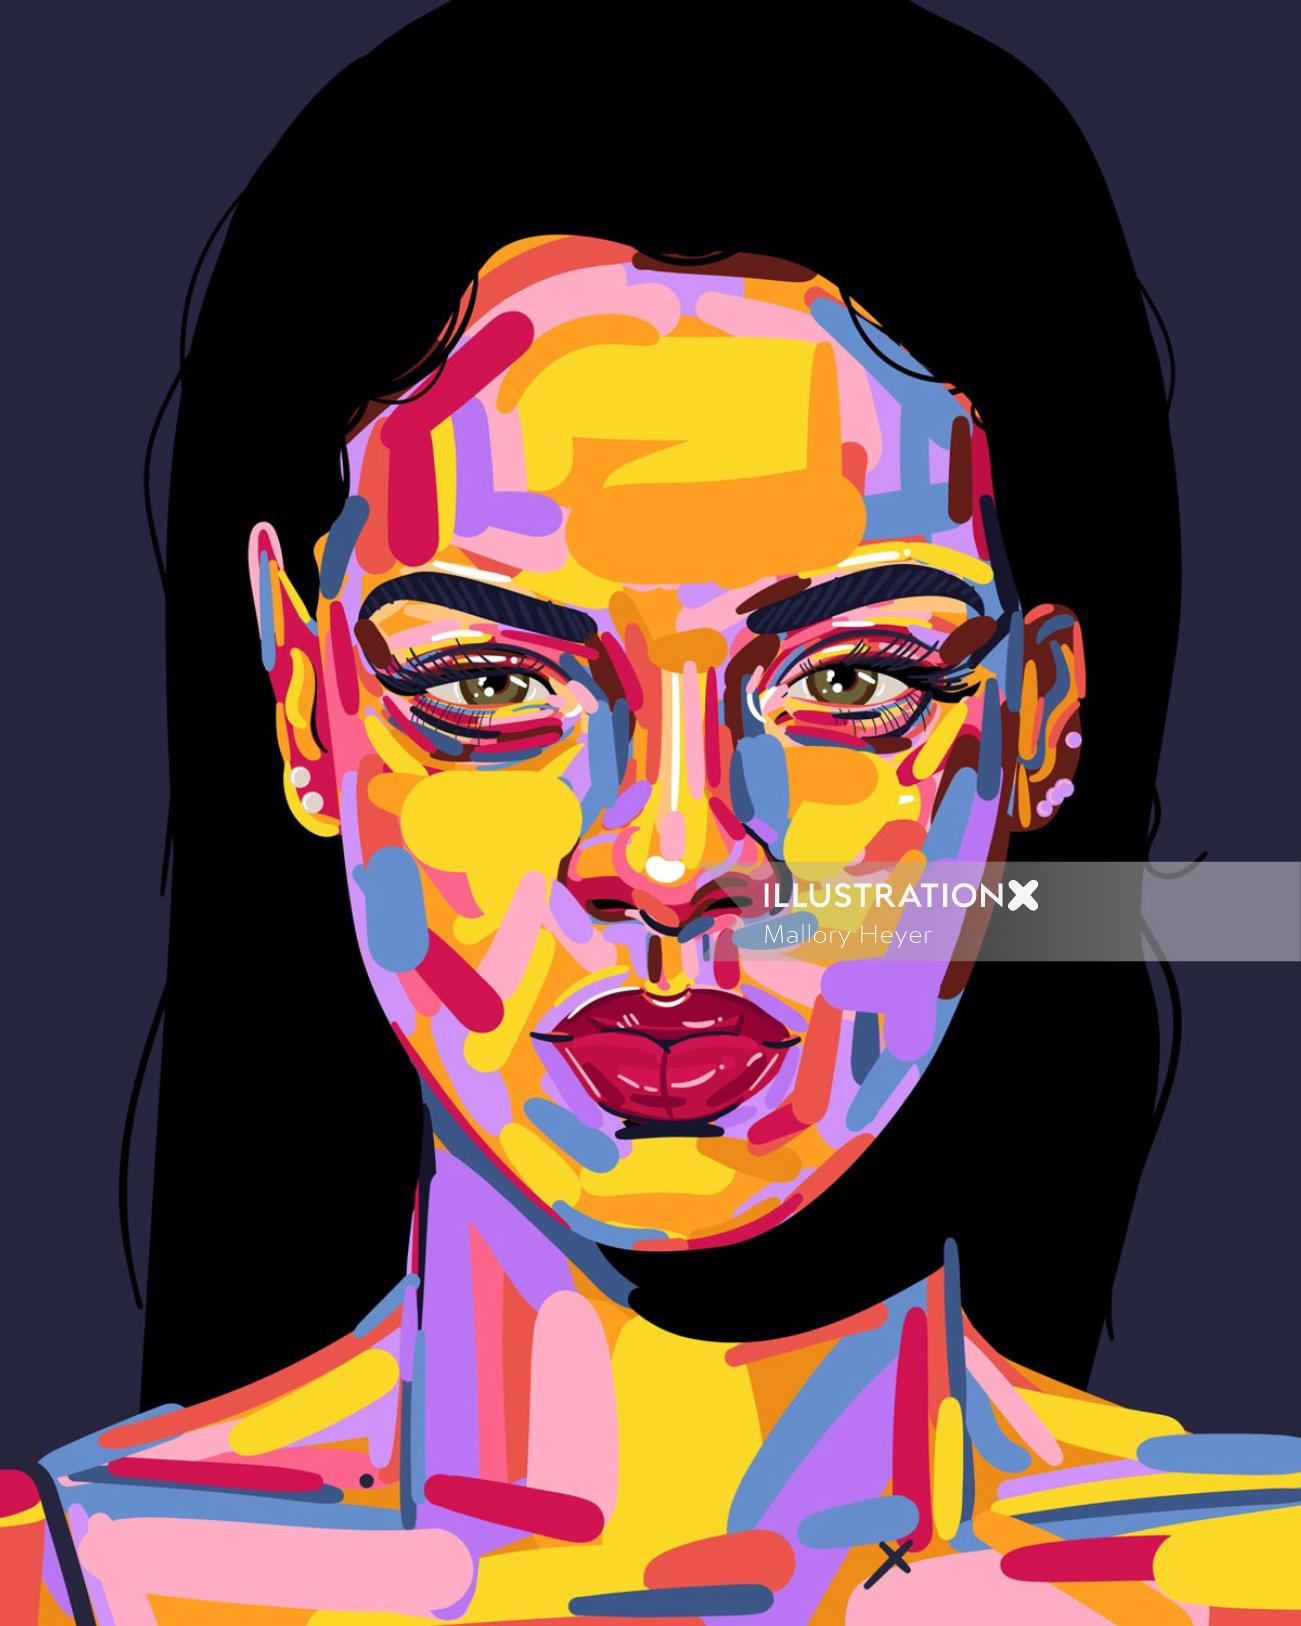 Portrait illustration of Rihanna by Mallory Heyer